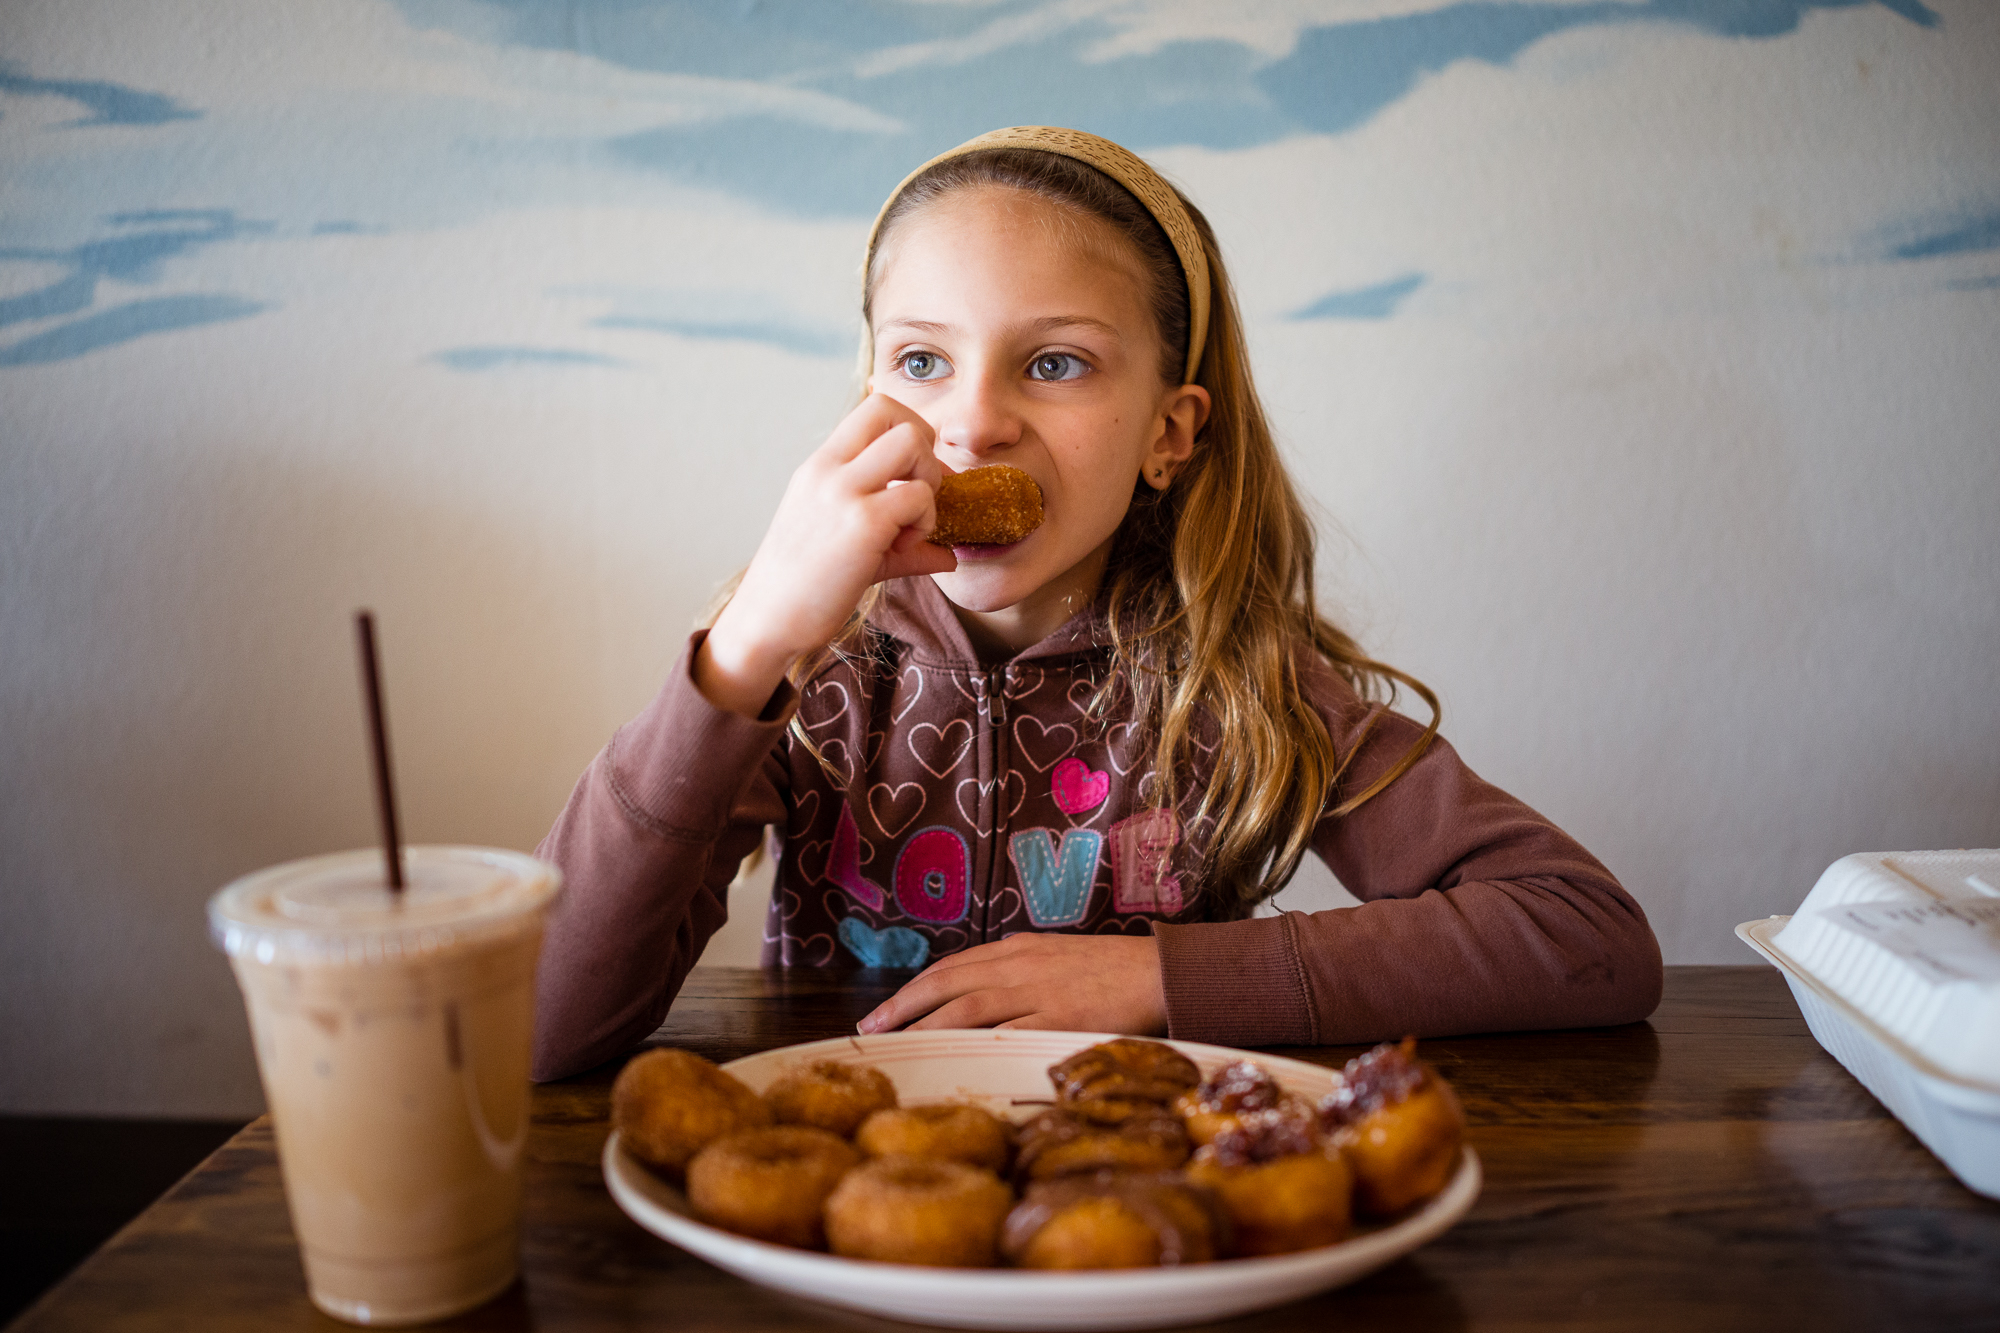 Girl and Donuts